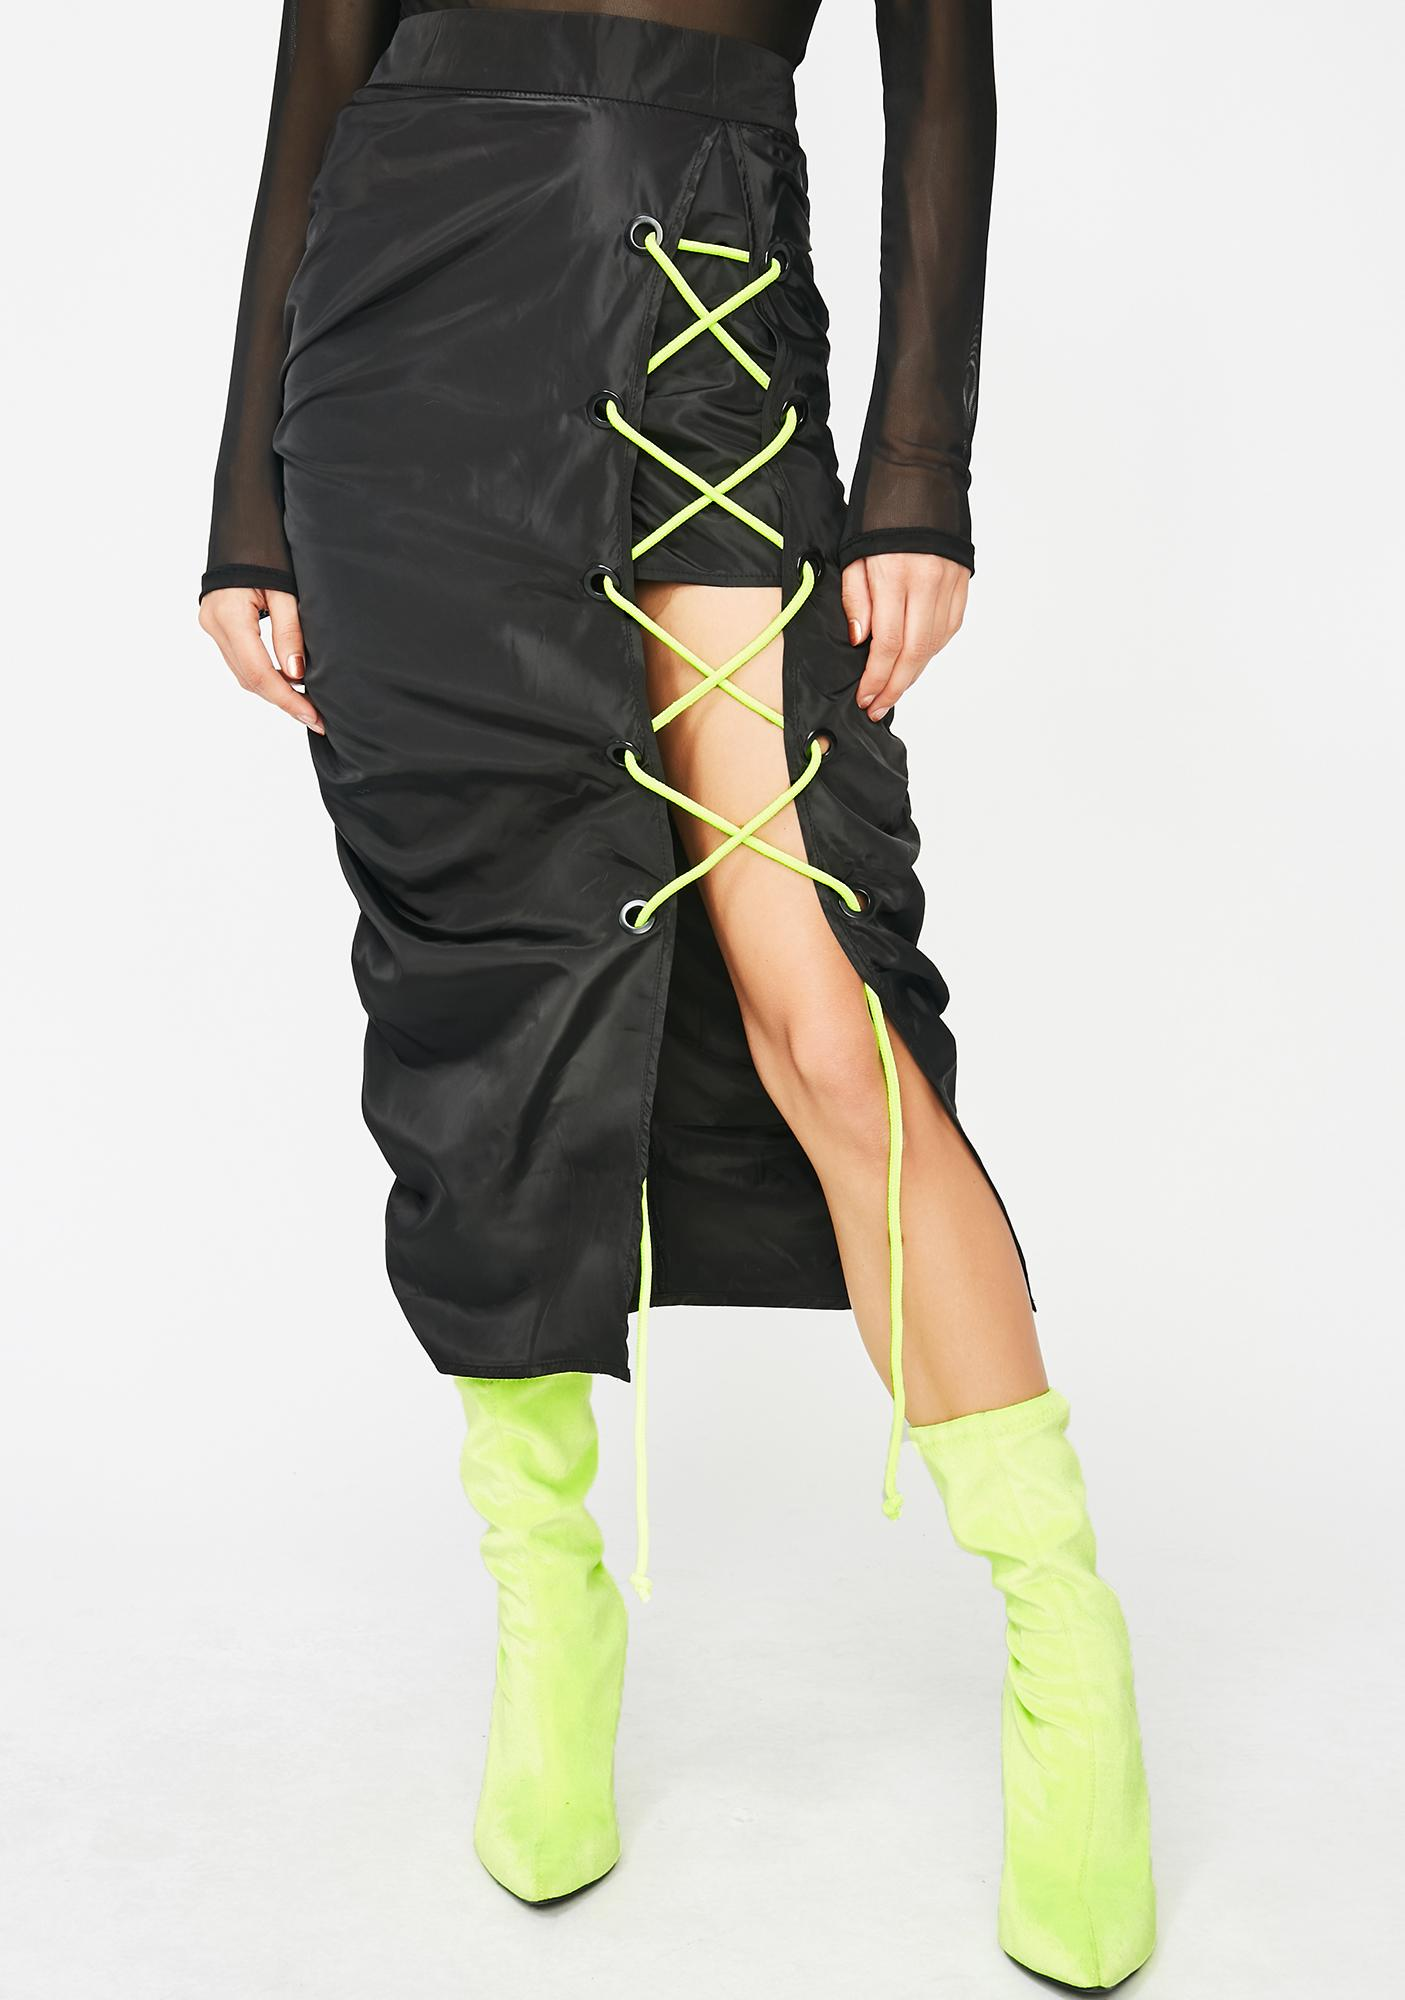 Bullet Proof Lace Up Skirt